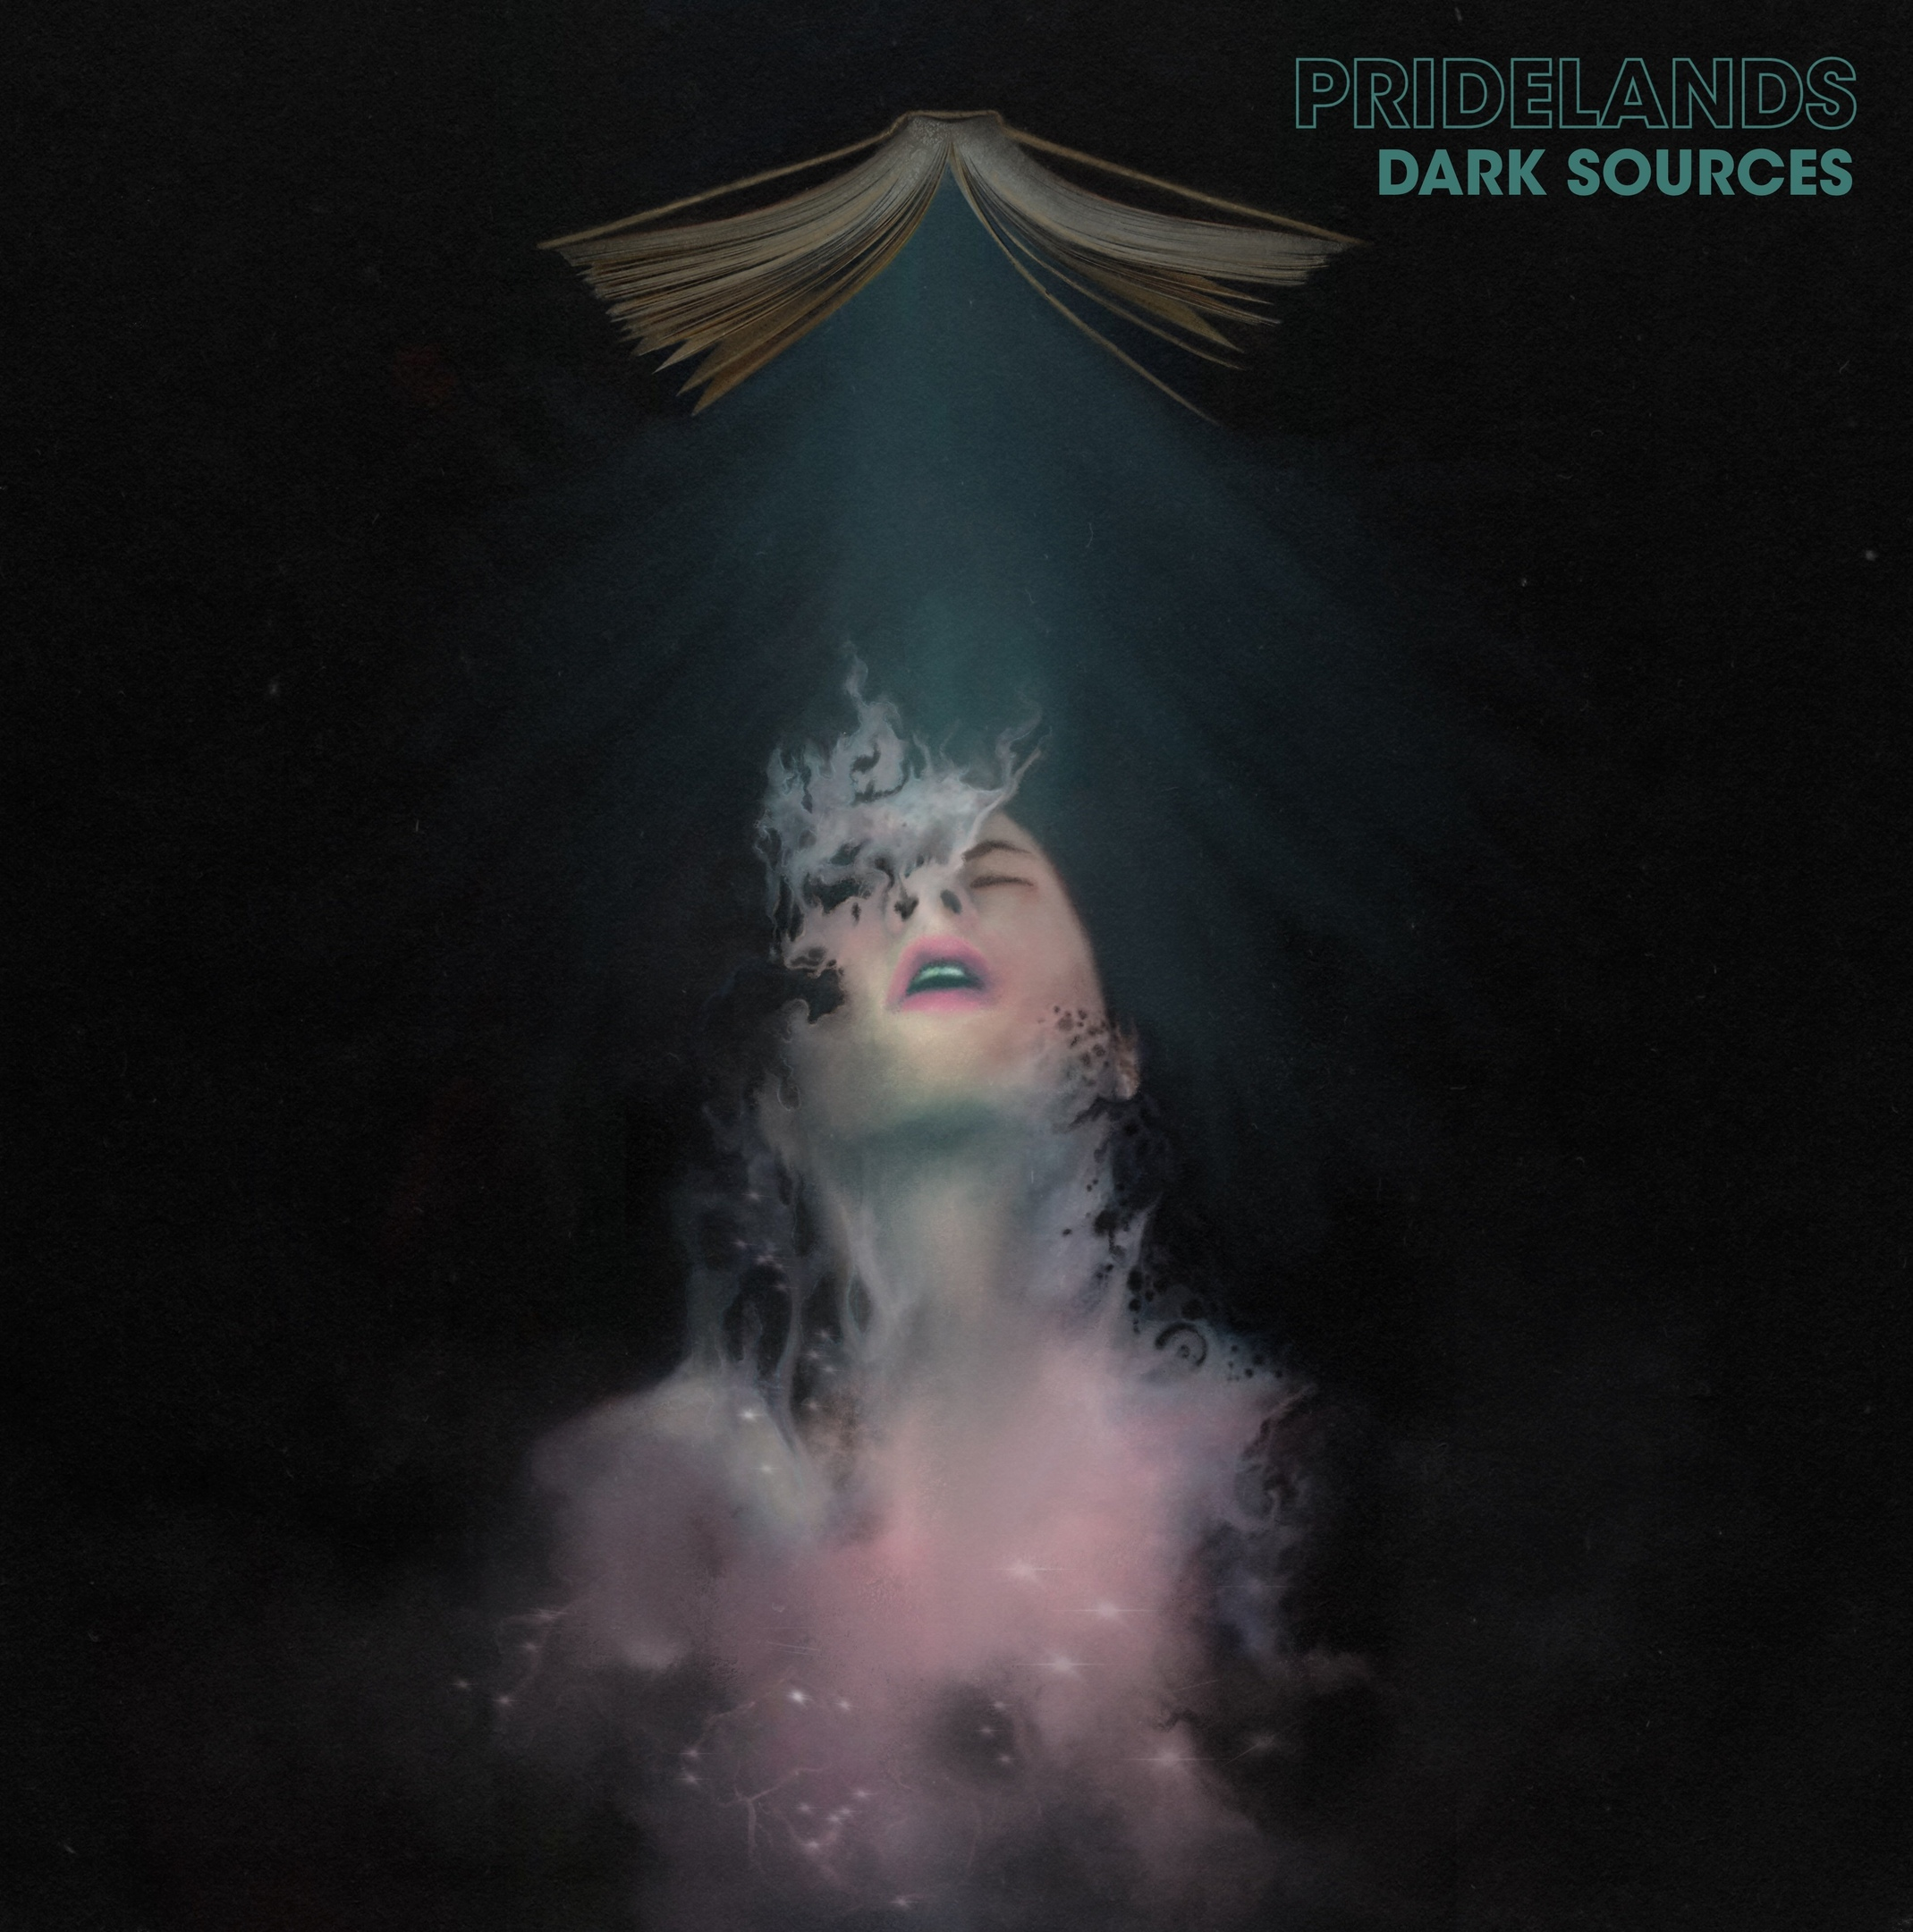 Pridelands - Dark Sources [Single] (2019)